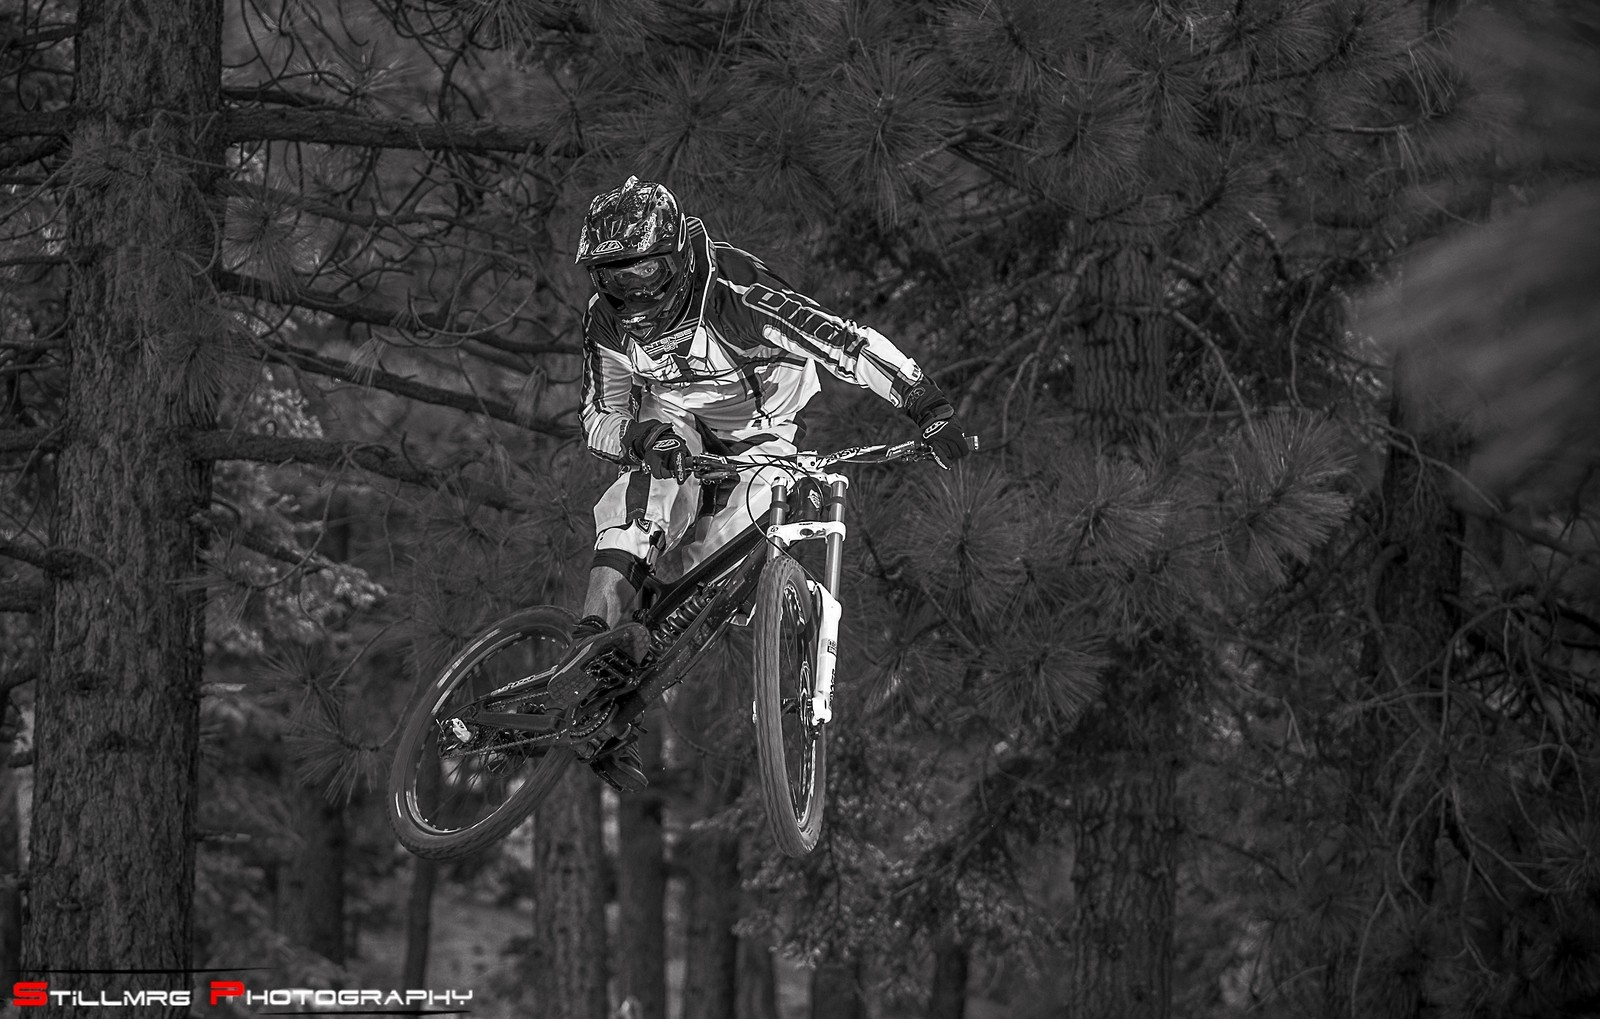 Snow Summit 2014 - Stillmrg Photography - Mountain Biking Pictures - Vital MTB